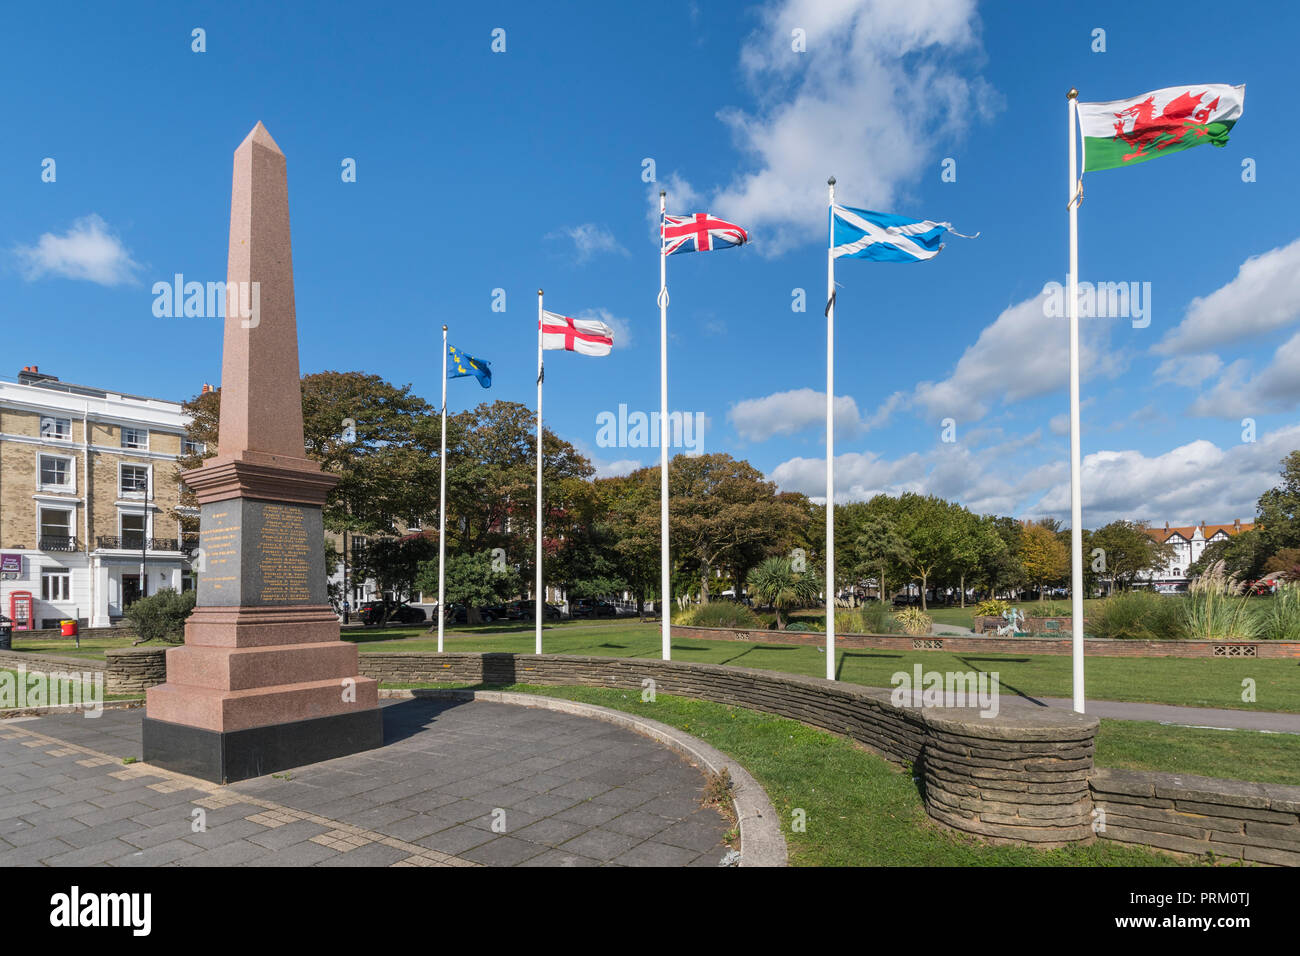 War memorial to the dead of the South African War (1899-1902) in Steyne Gardens at Worthing, West Sussex, England, UK. War monument. - Stock Image